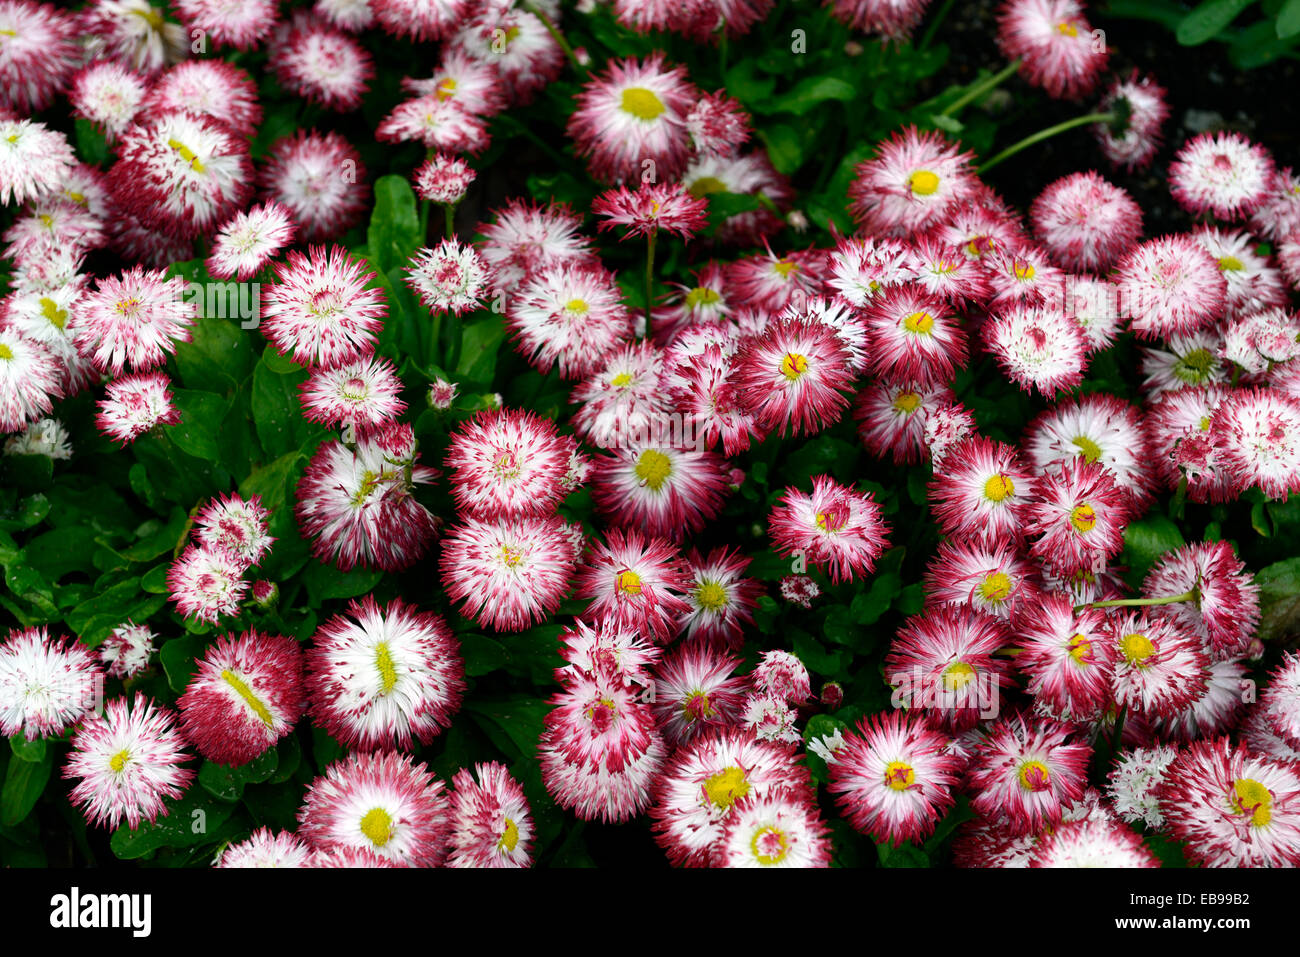 White Flower Red Tips Stock Photos White Flower Red Tips Stock